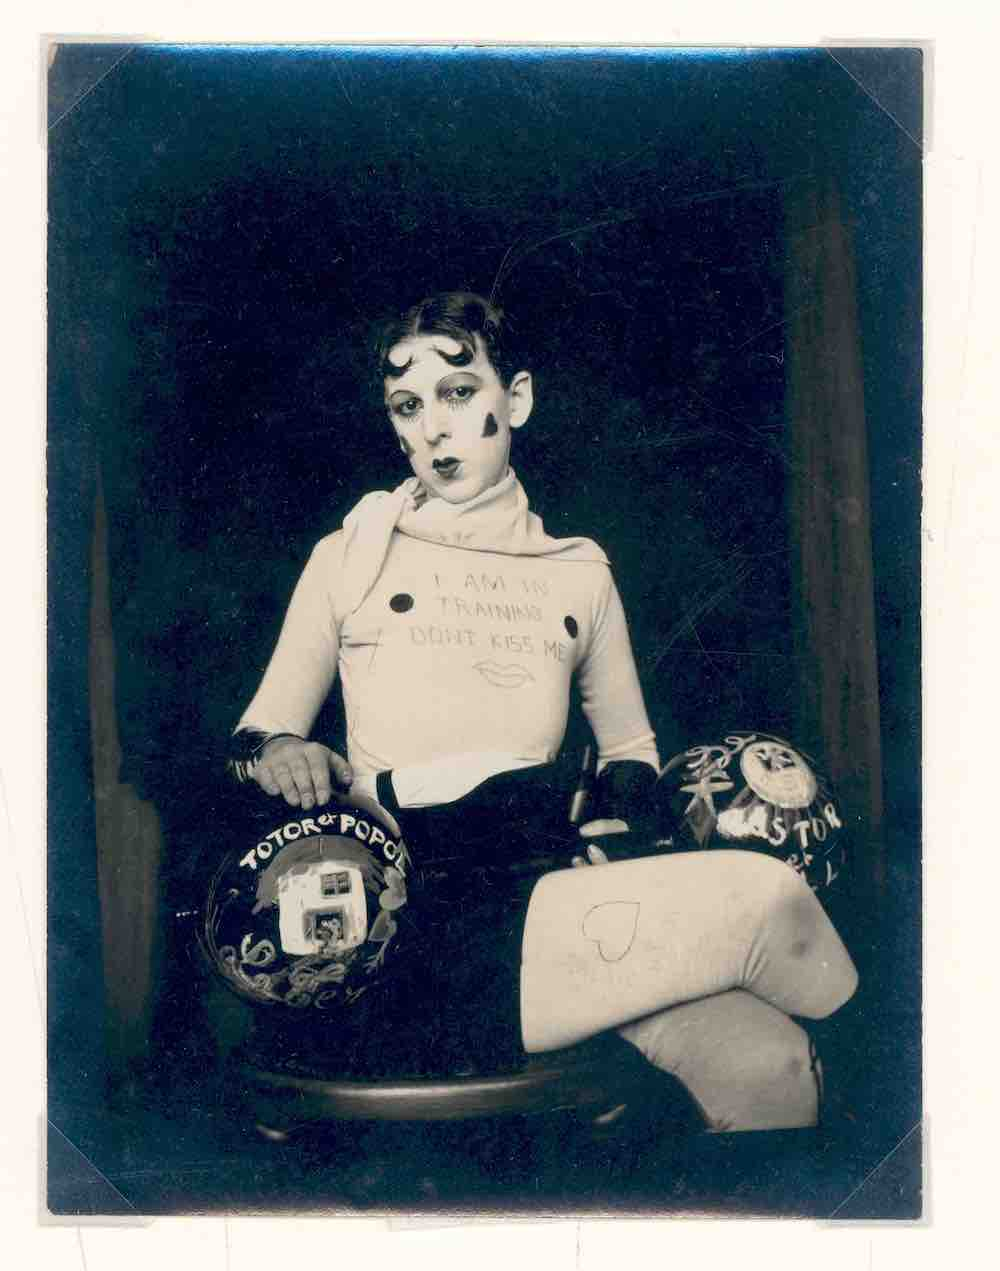 Claude Cahun Self Portrait c.1927